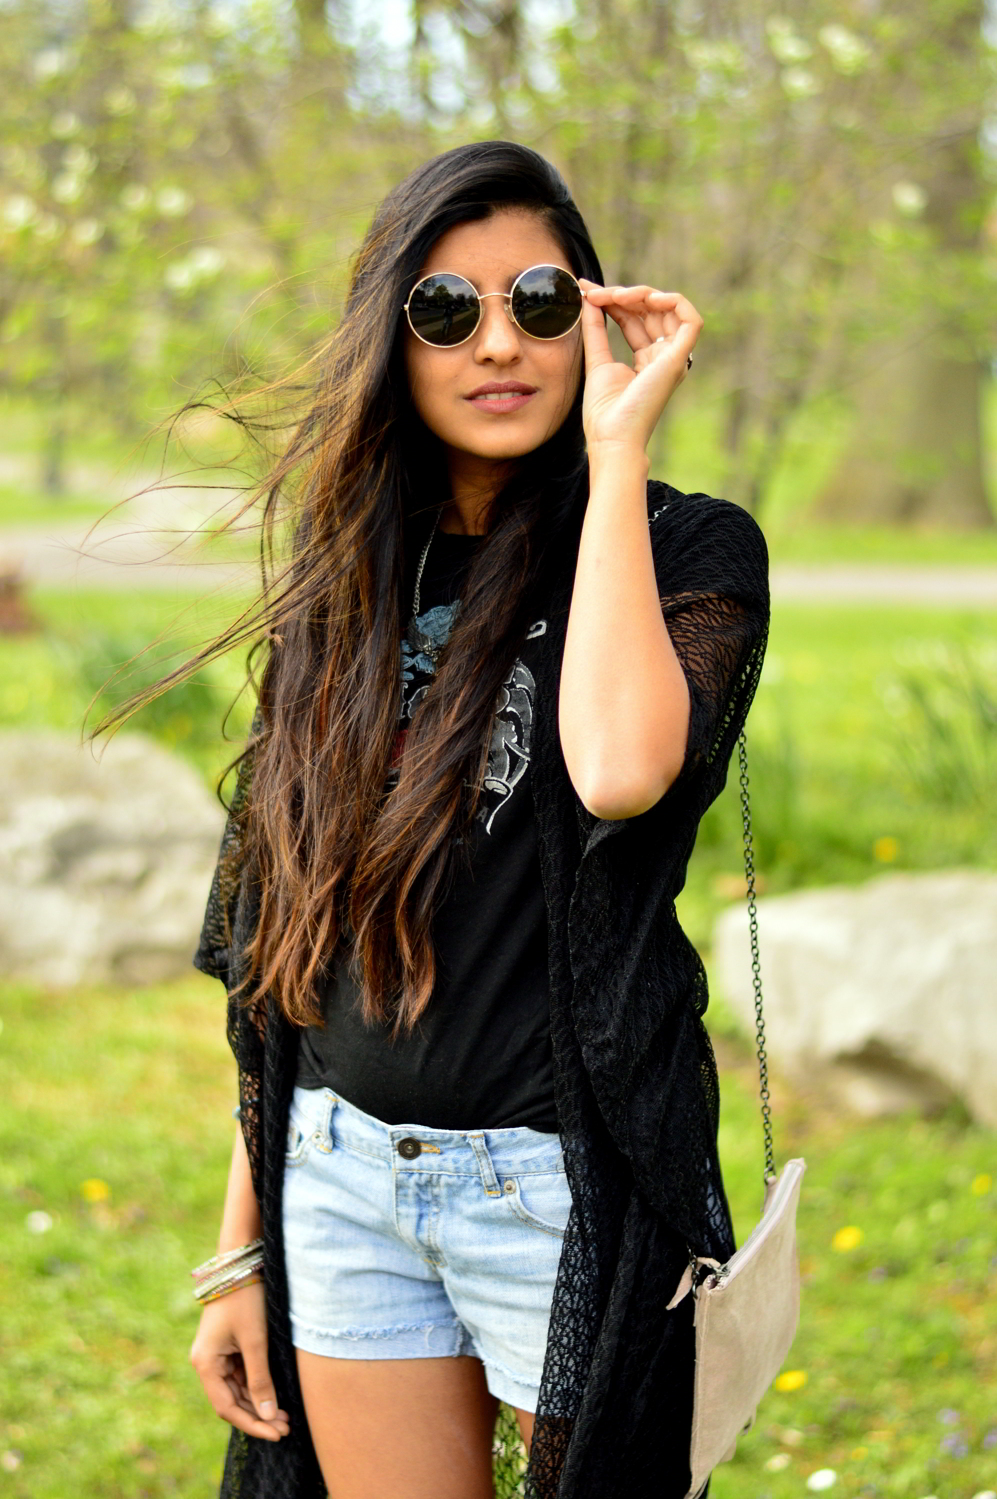 graphic-tee-fringe-boho-chic-casual-summer-style-blogger-outfit 2